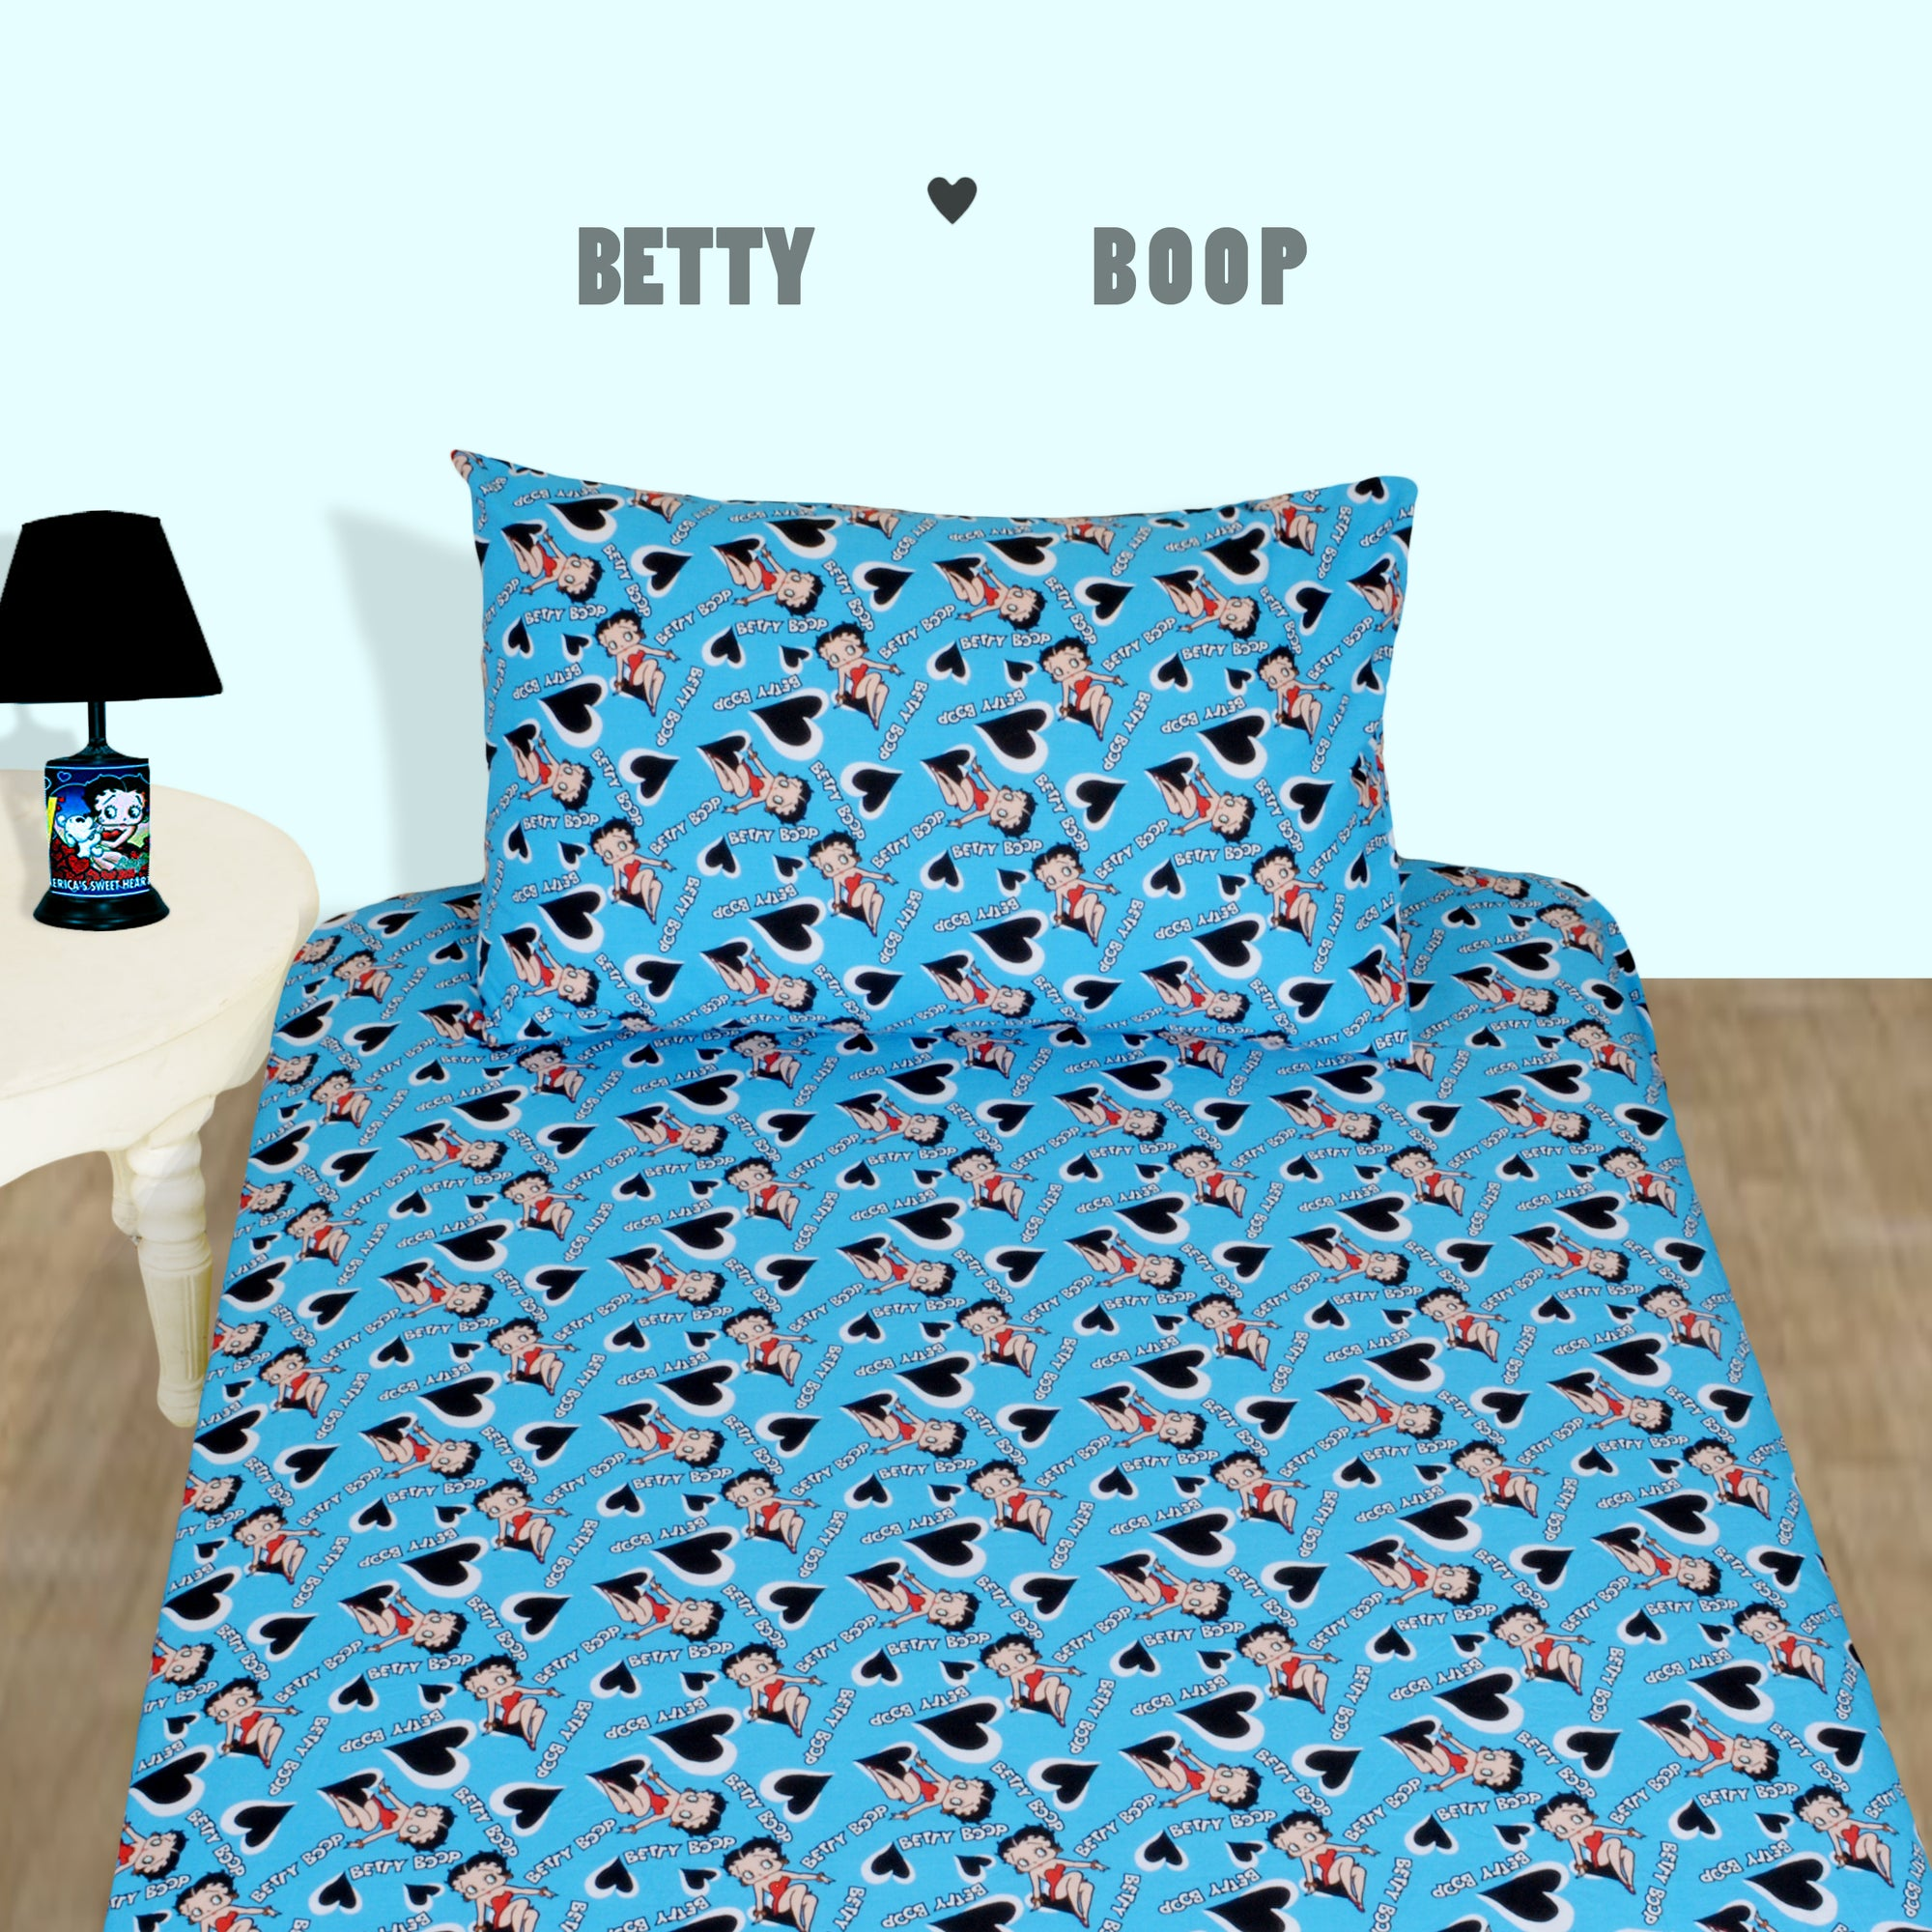 Betty Boop Character Blue Bed-sheet with Pillow case